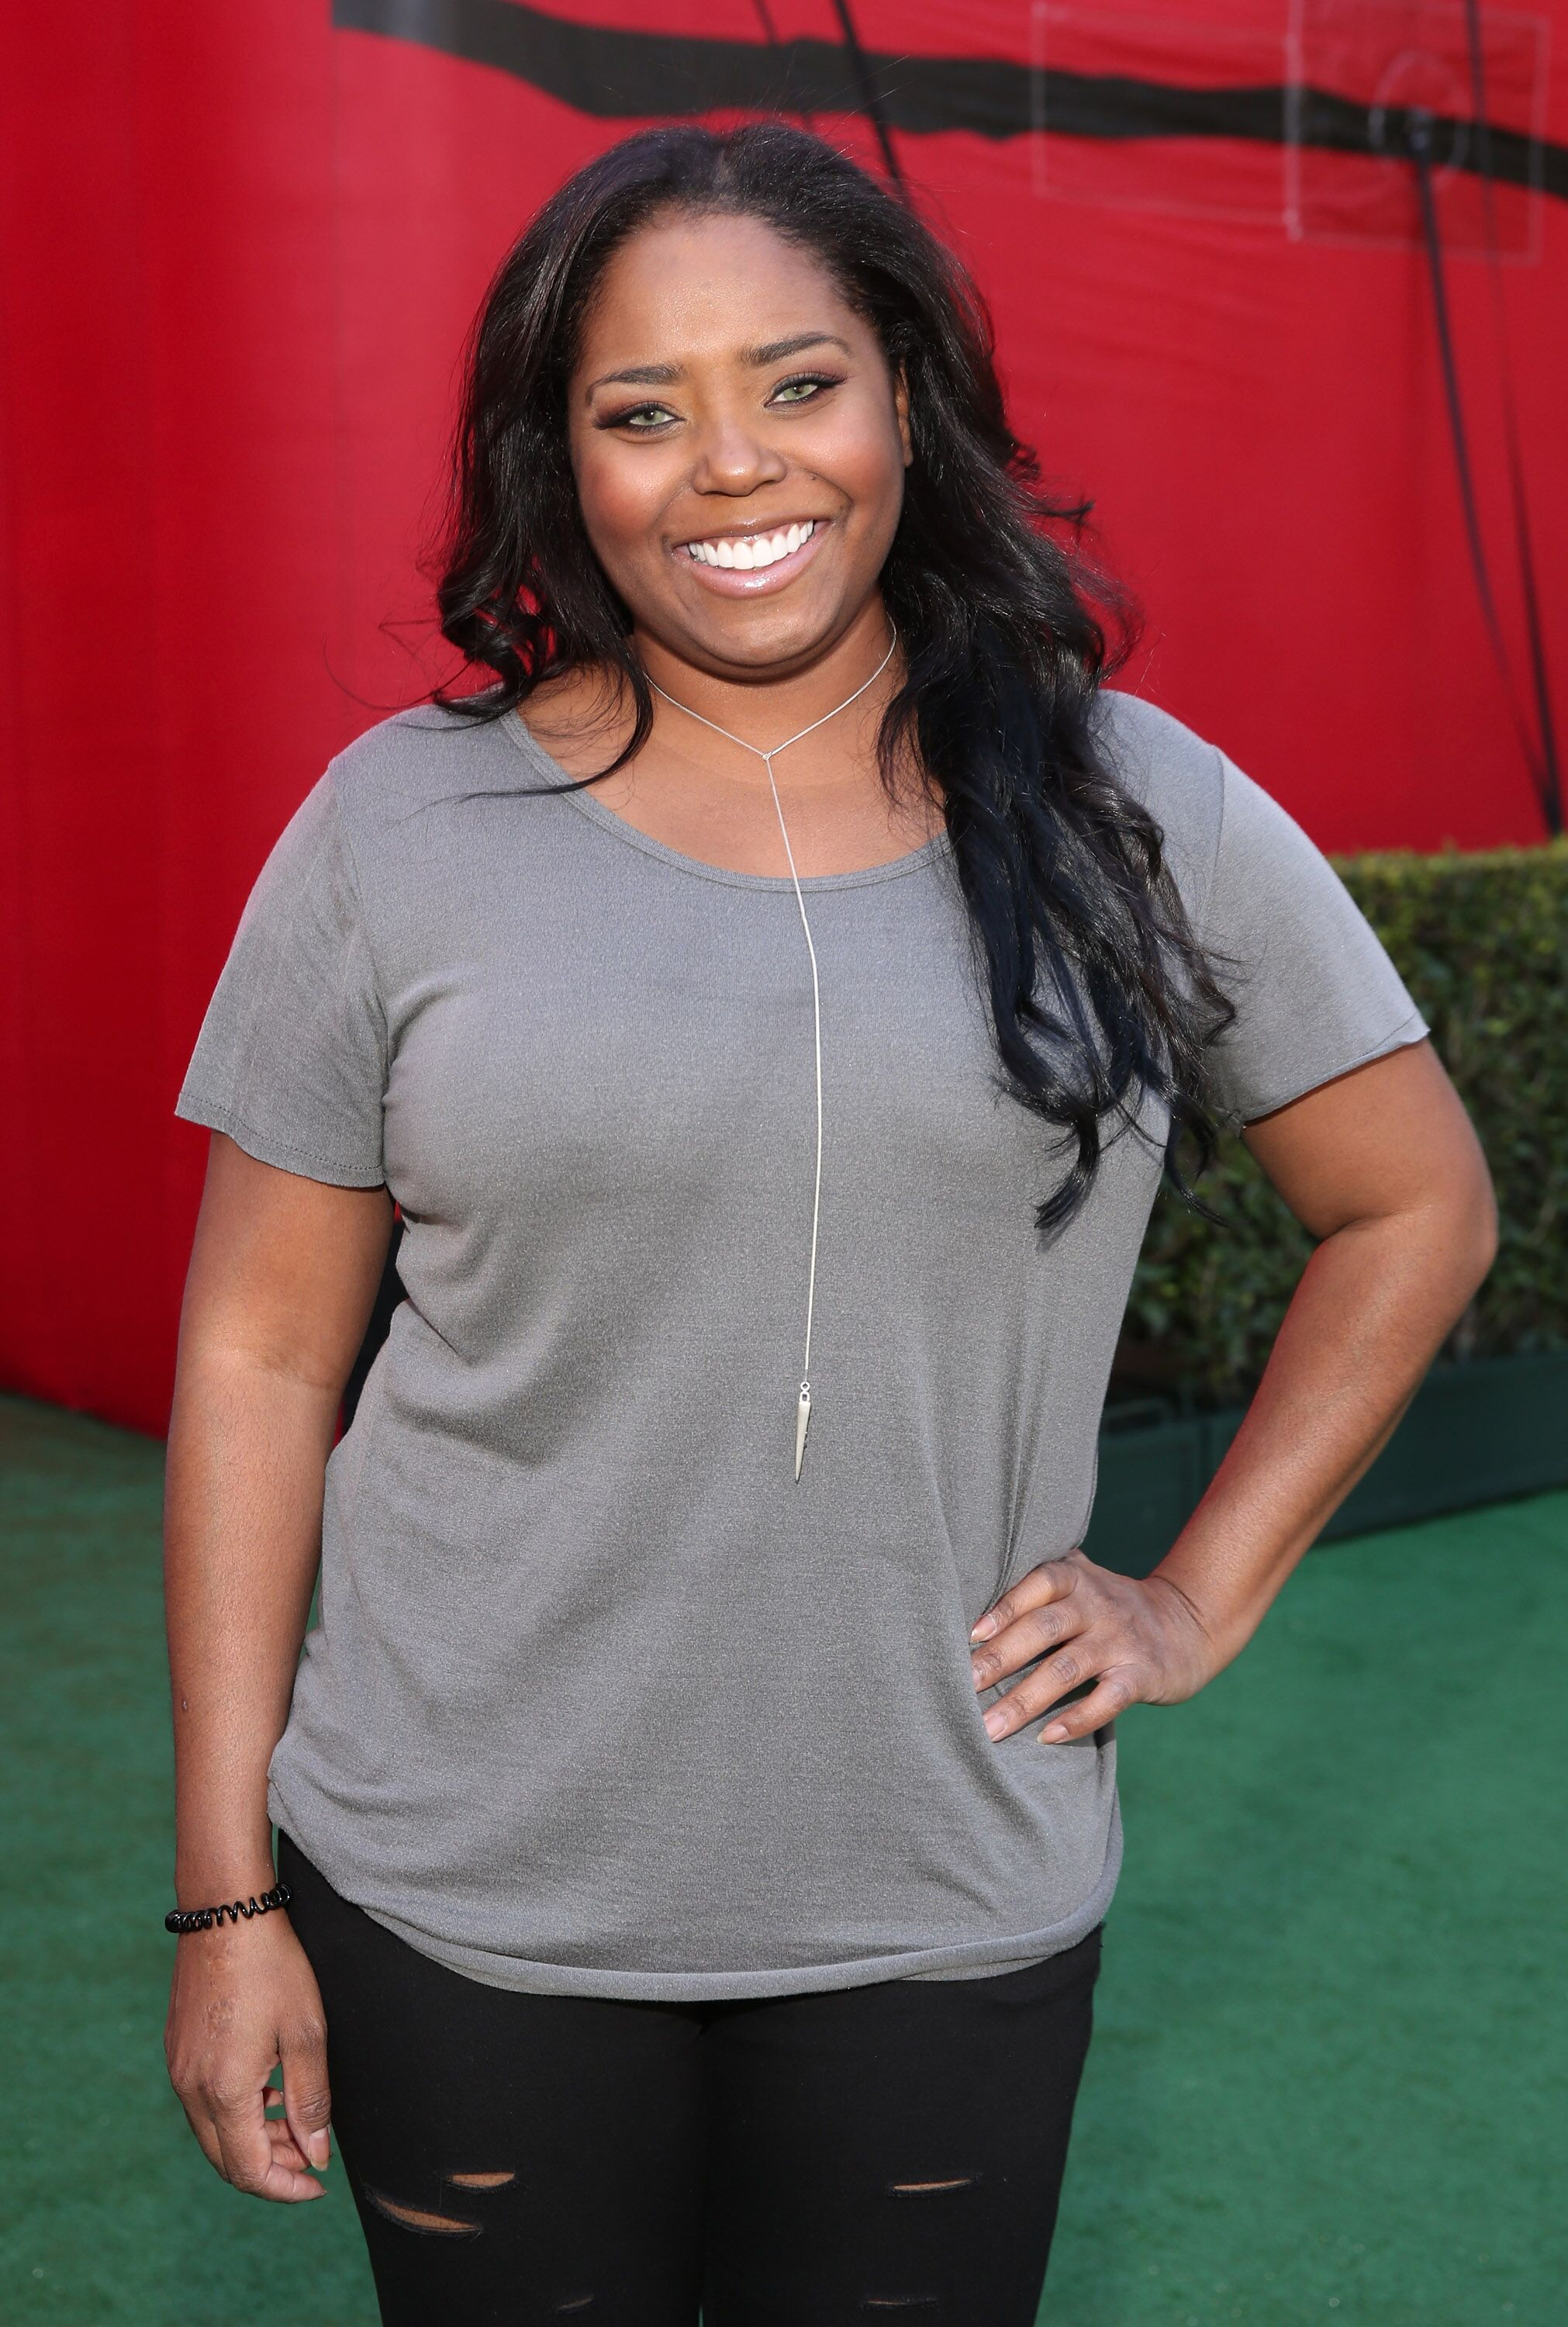 """Shar Jackson attends the premiere of 20th Century Fox's """"The Peanuts Movie"""" at Regency Village Theatre on November 1, 2015 in Westwood, California. 